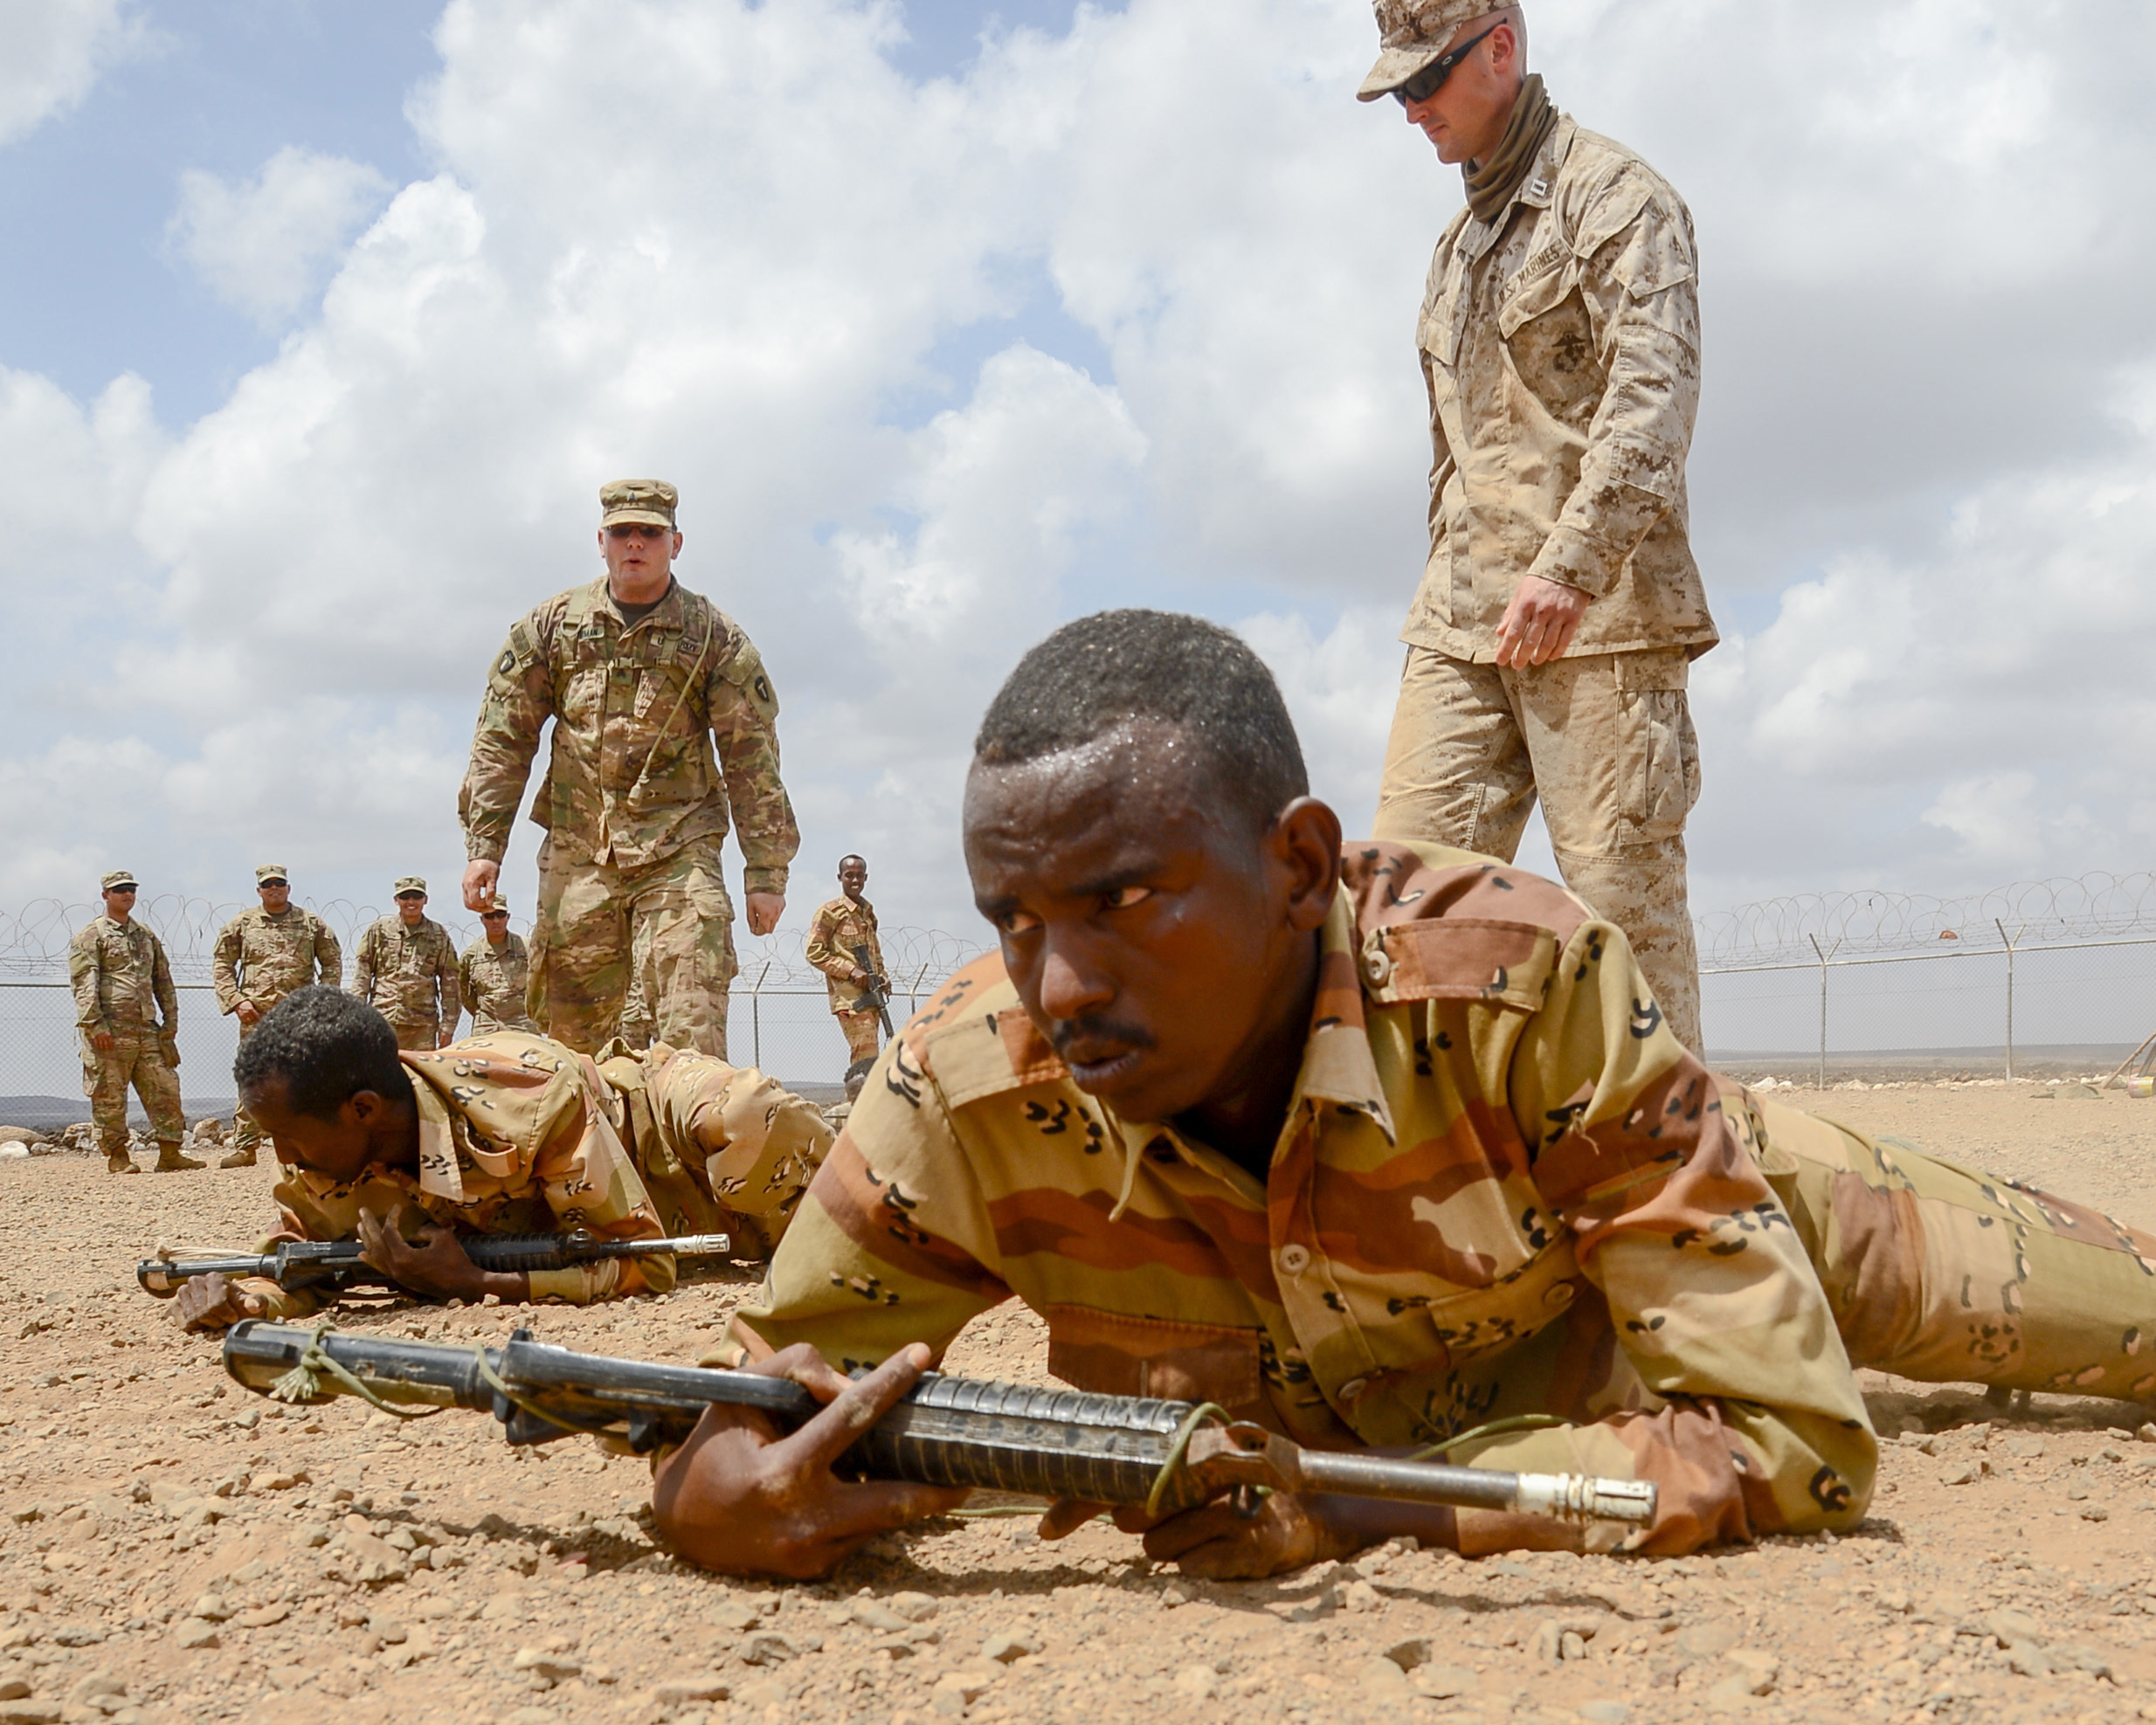 U.S. Army Sergeant Vincent Merriman, Alpha Company, 3rd Battalion, 141st Infantry Regiment, Texas National Guard, monitors Djiboutian soldiers during a react-to-fire exercise at a training site outside Djibouti City, April 16, 2018. U.S. service members have been training the Djiboutian Army's Rapid Intervention Battalion, a newly formed crisis response unit. (U.S. Navy Photo by Mass Communication Specialist 2nd Class Timothy M. Ahearn)